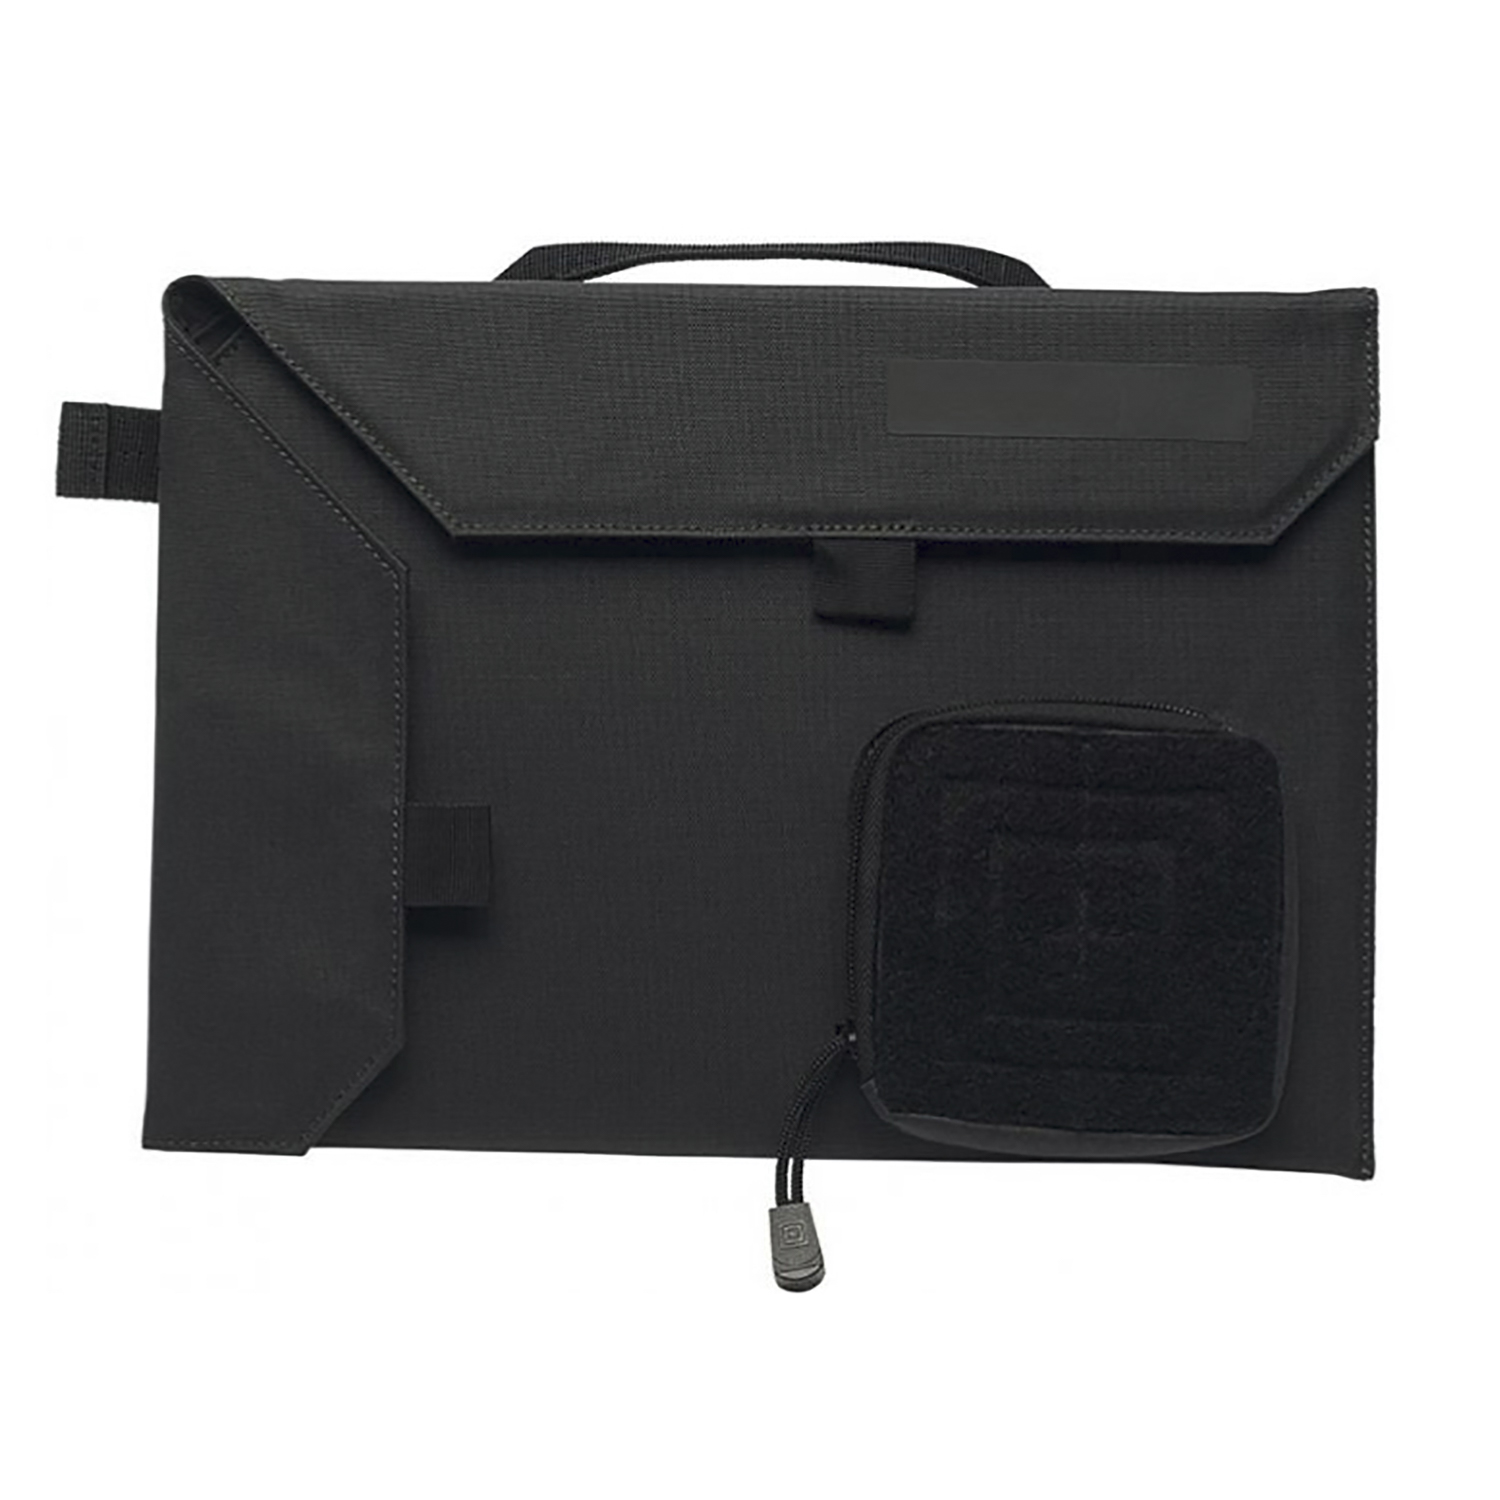 5.11 Tactical Rigid Cuff Case